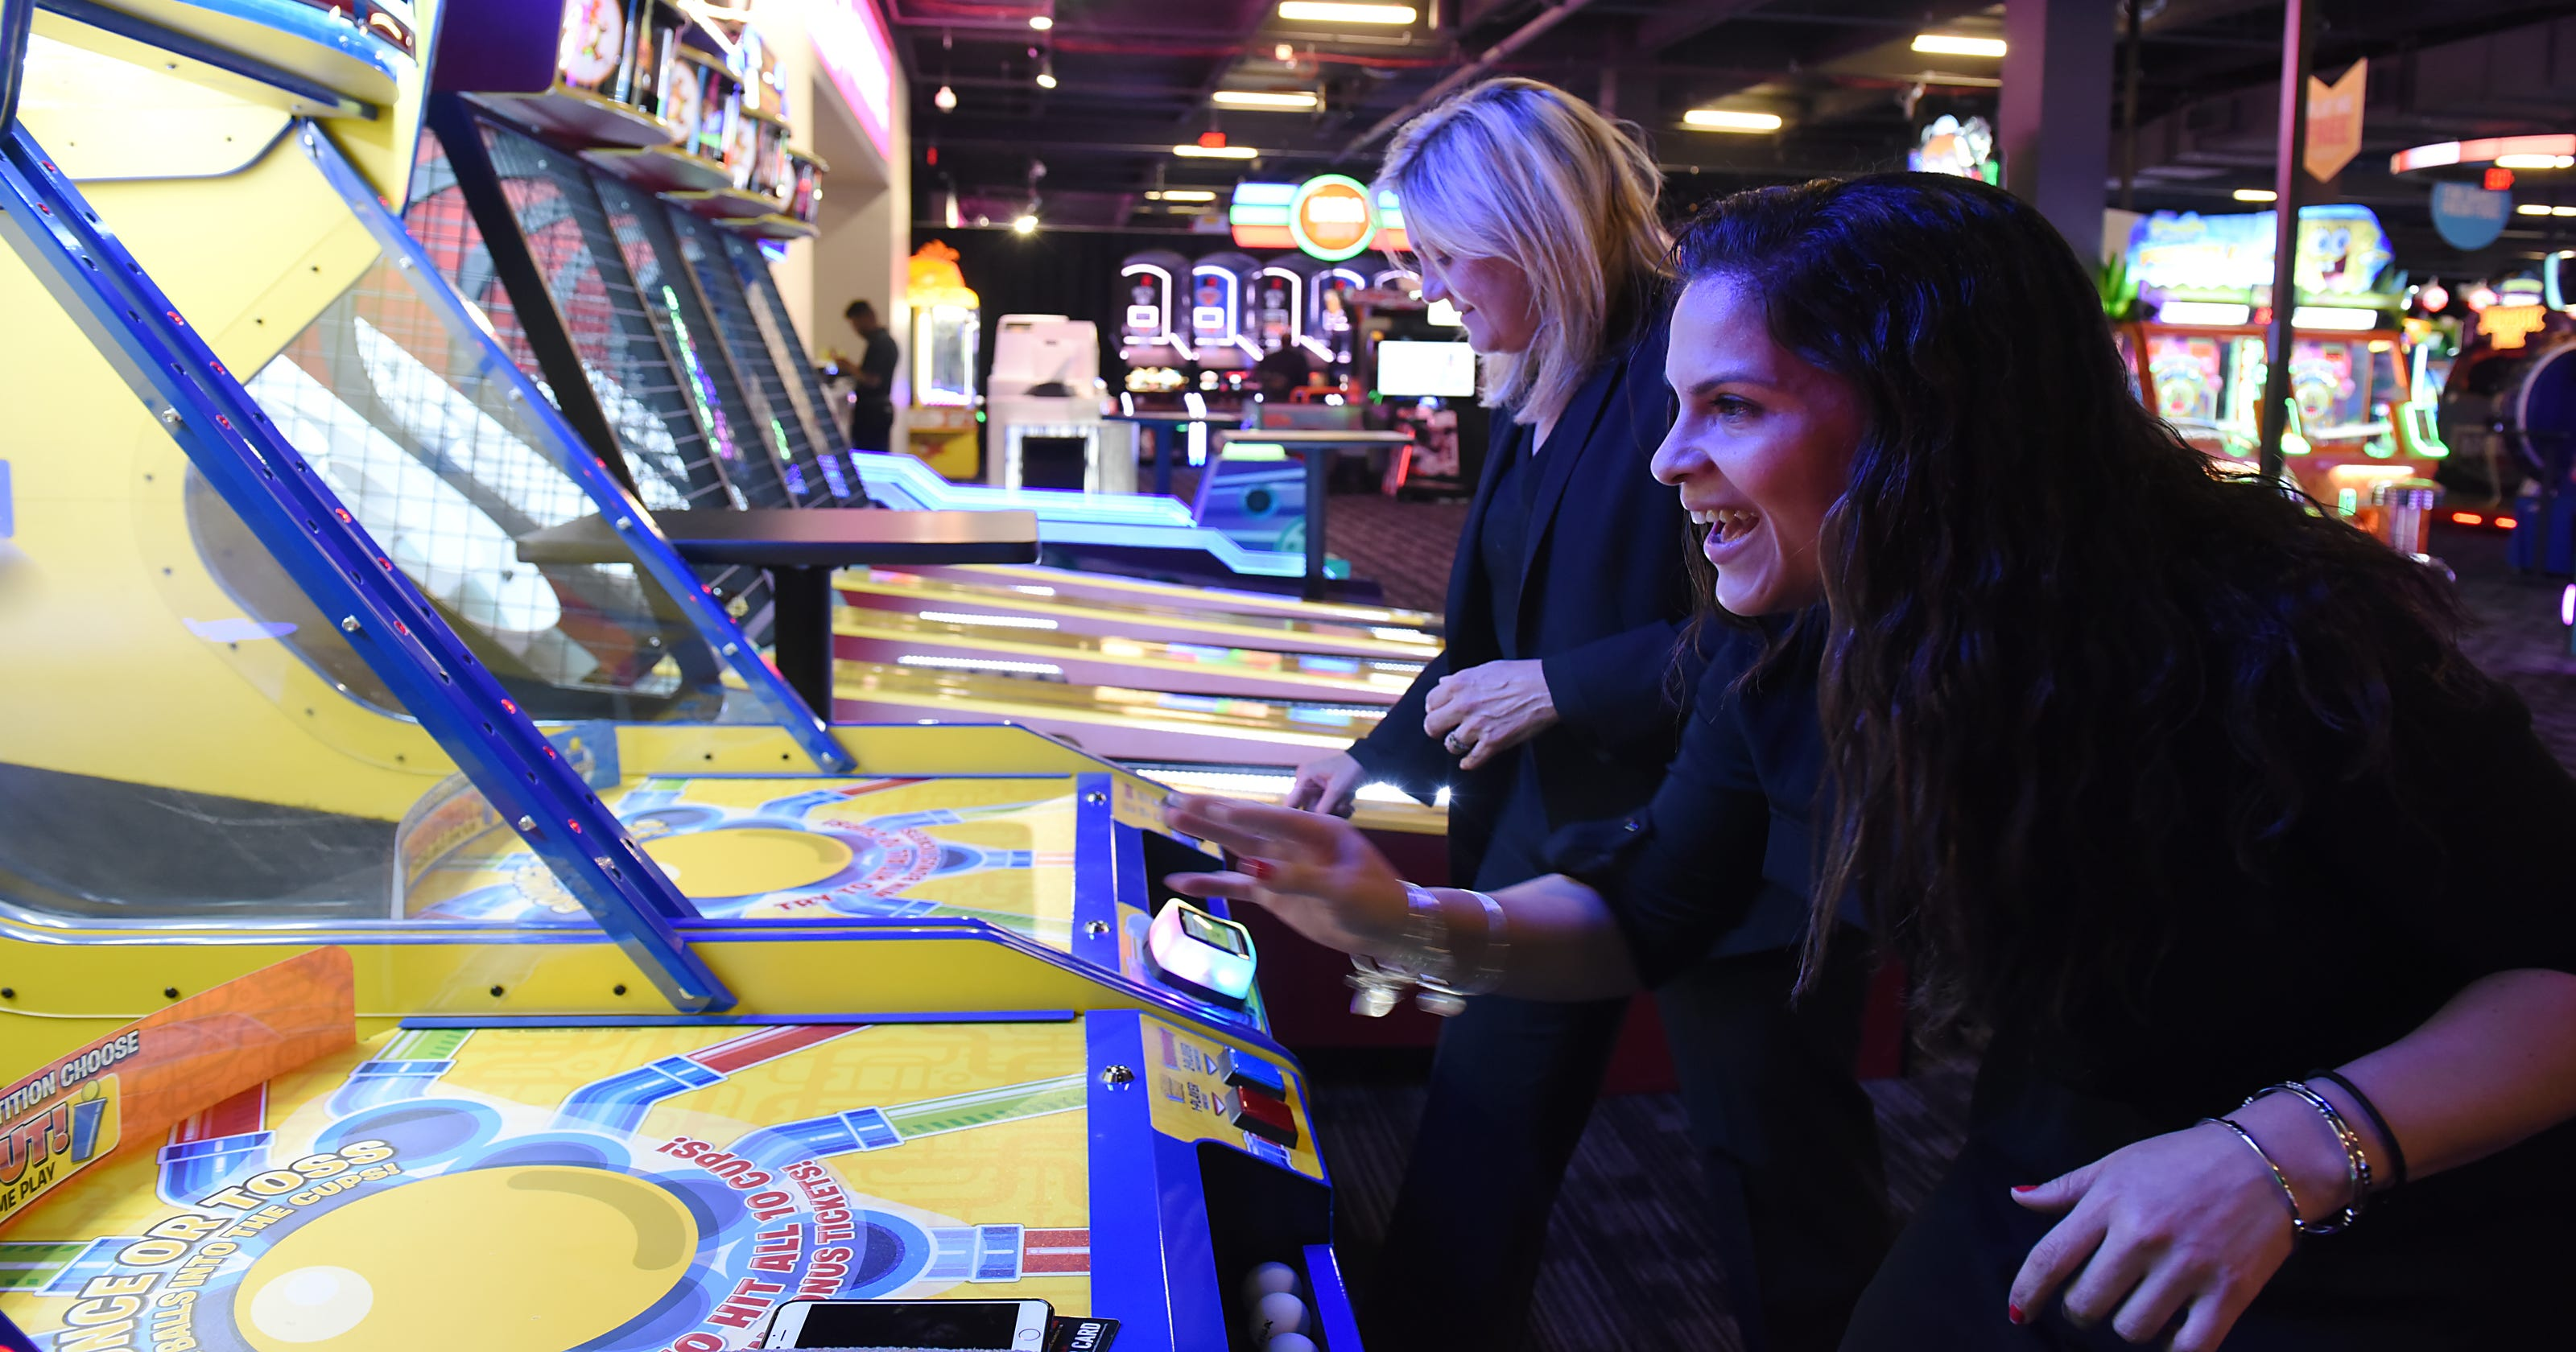 Dave & Buster's opening at Willowbrook in Wayne, first in North Jersey